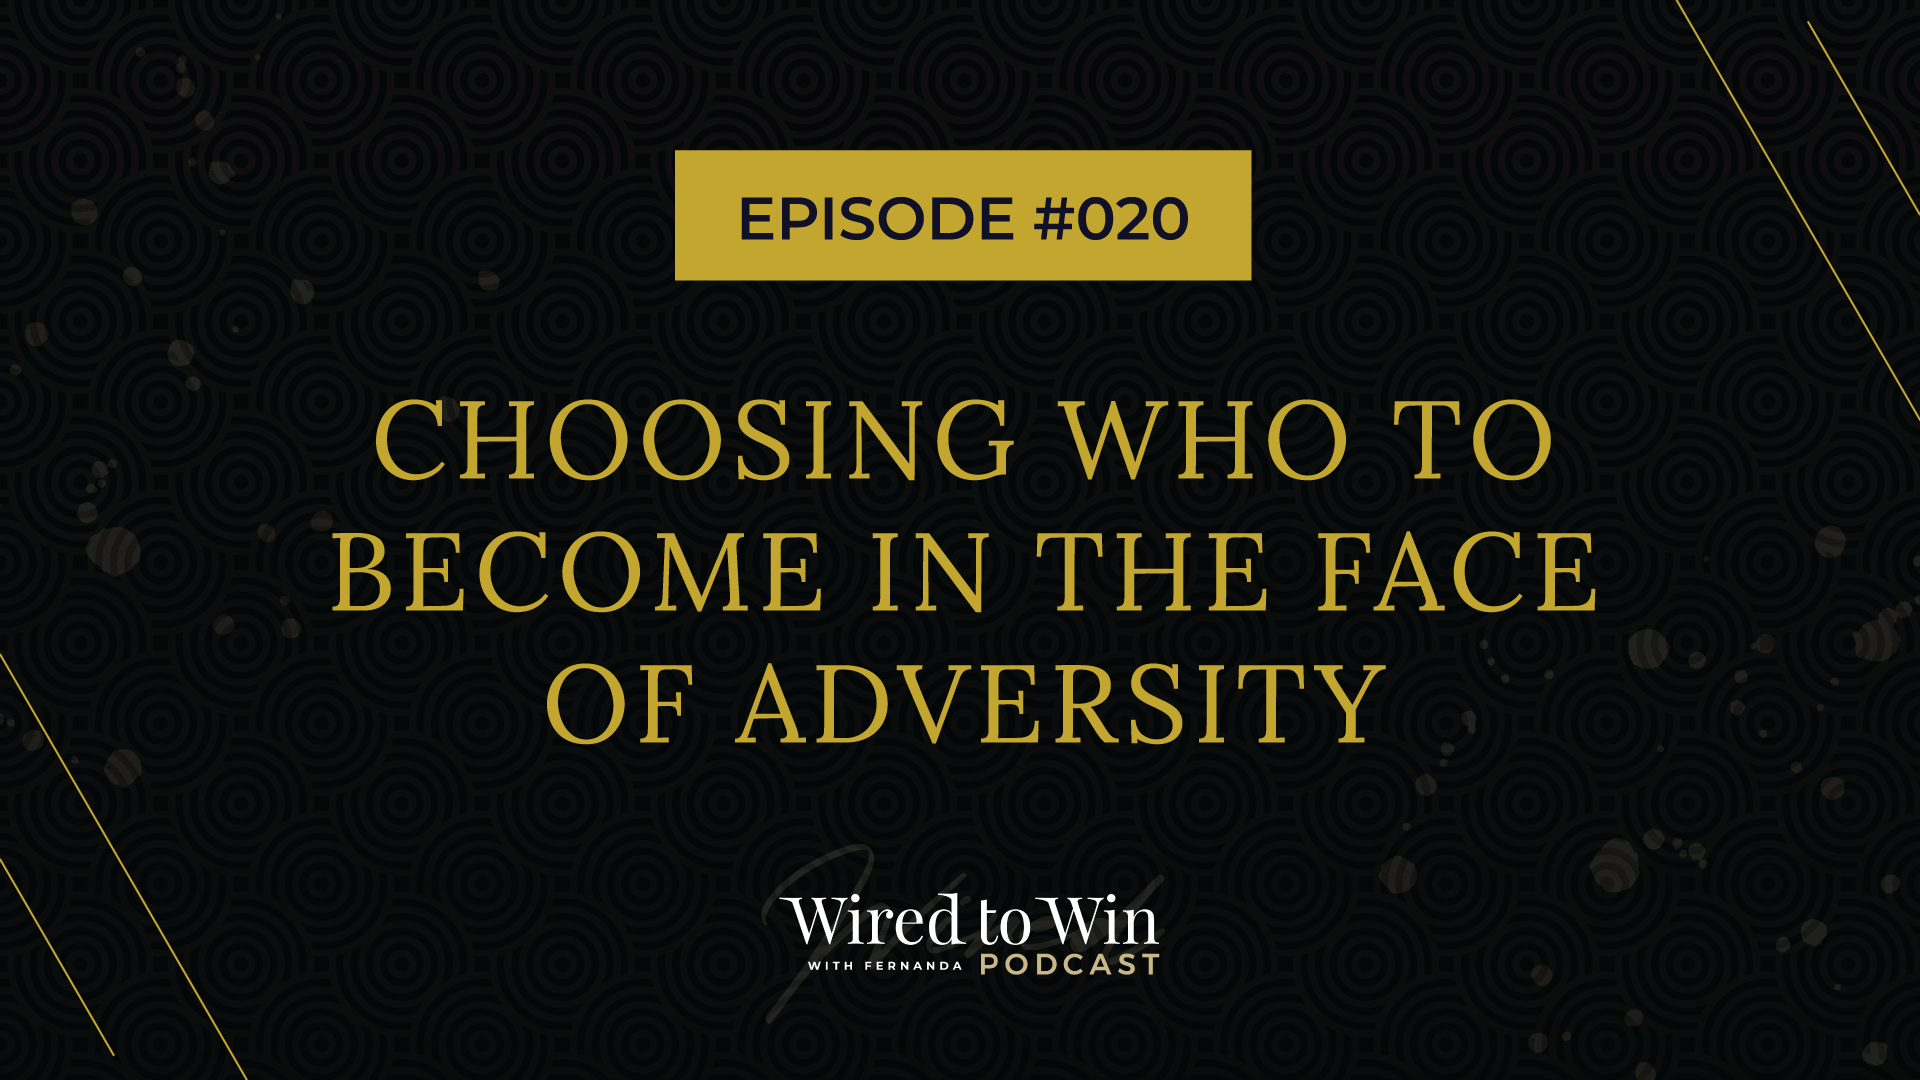 become in the face of adversity